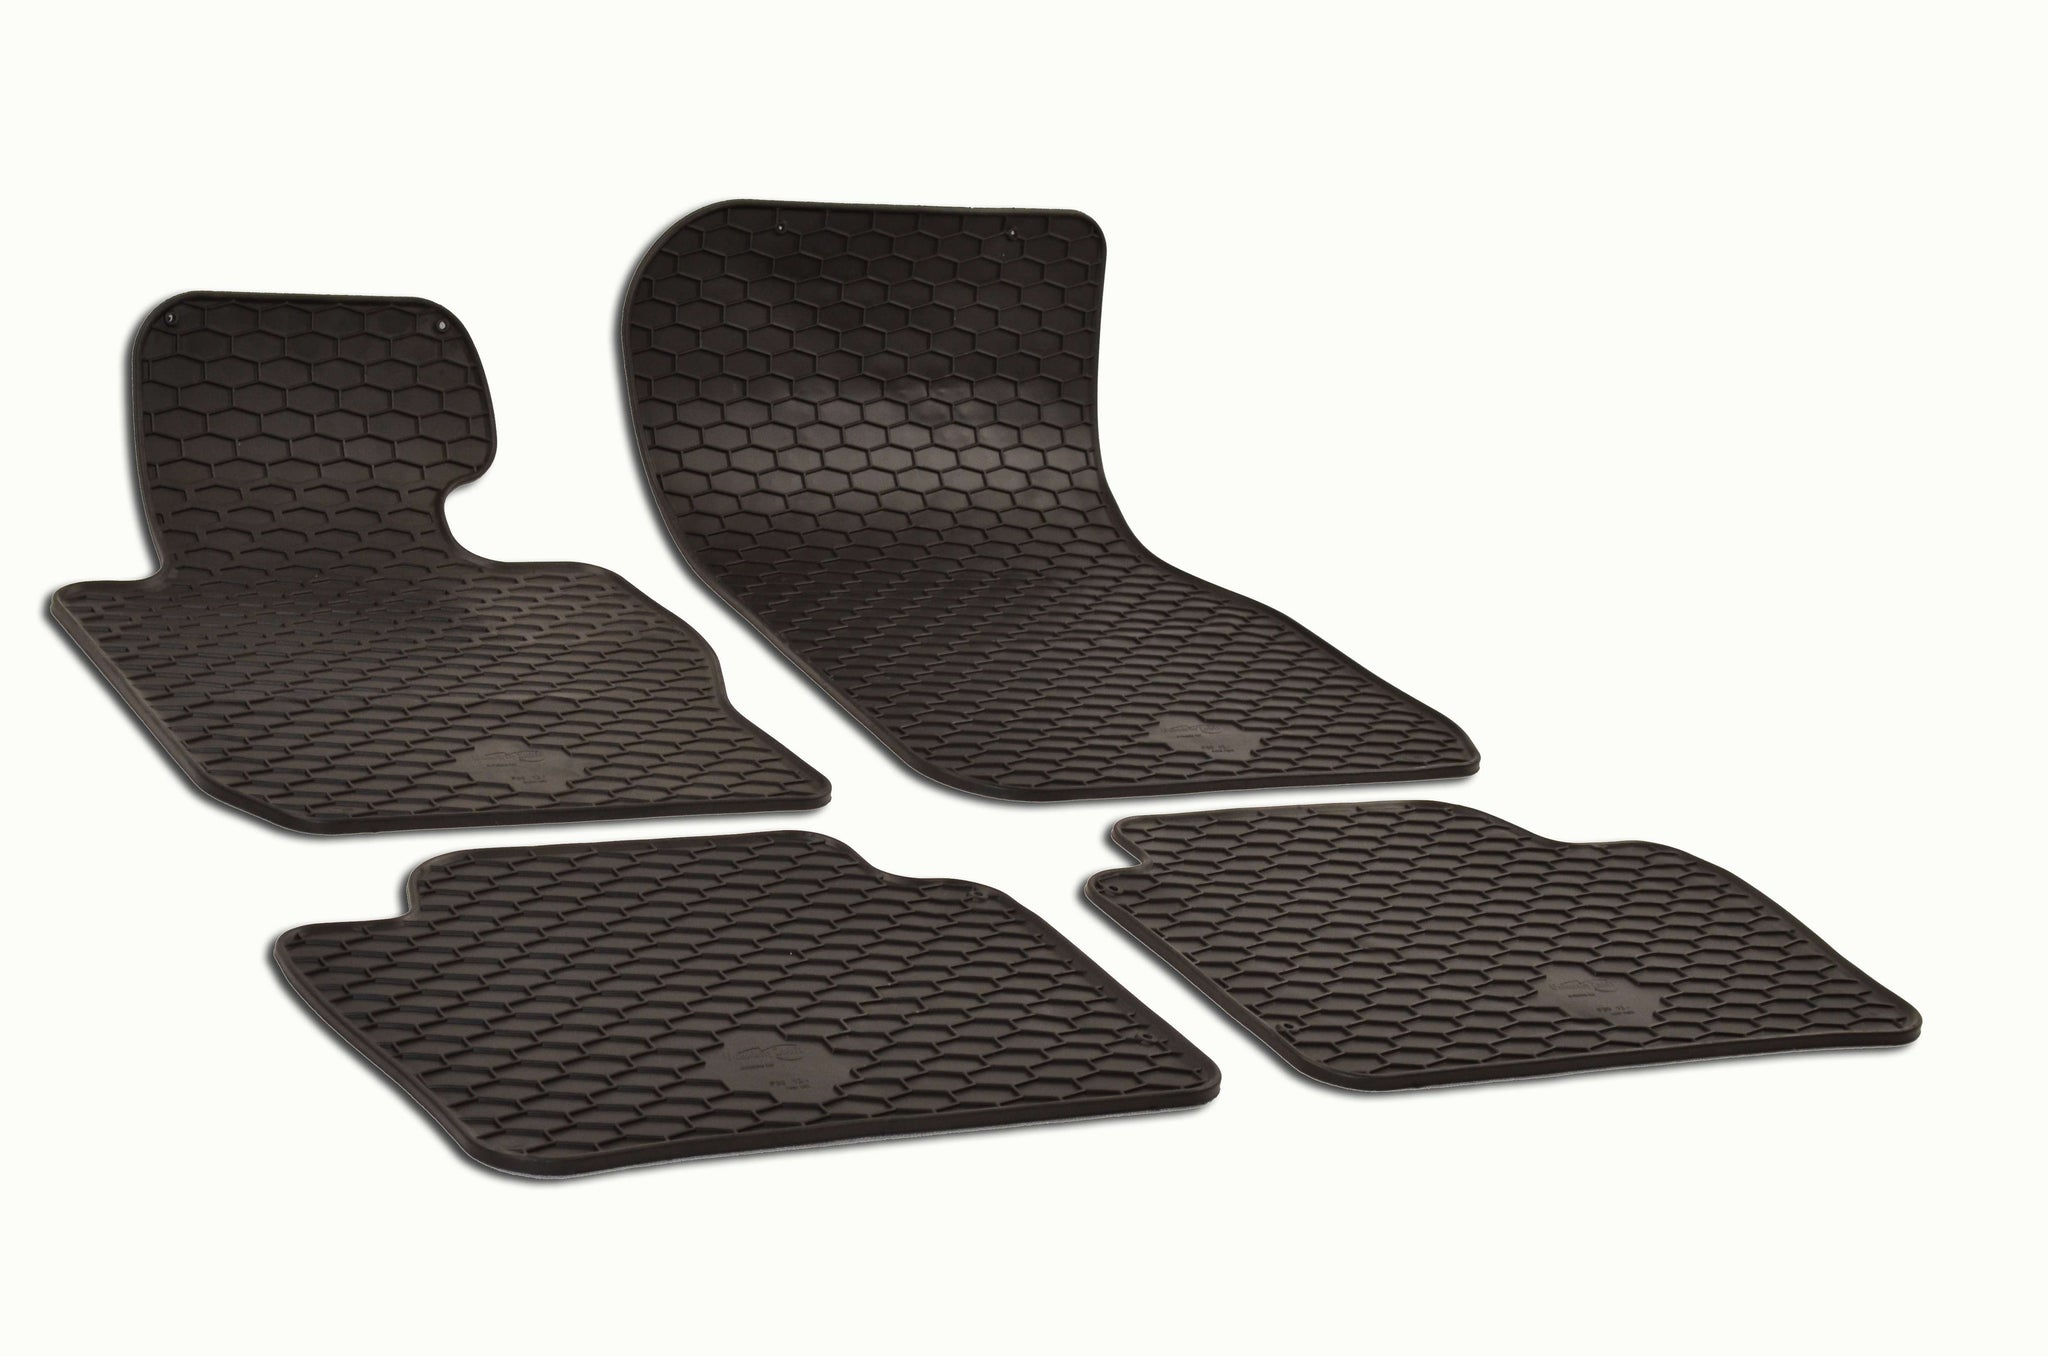 BMW 330e 2016 F30 Sedan Set of 4 Black Rubber OE Fit All Weather Floor Mats